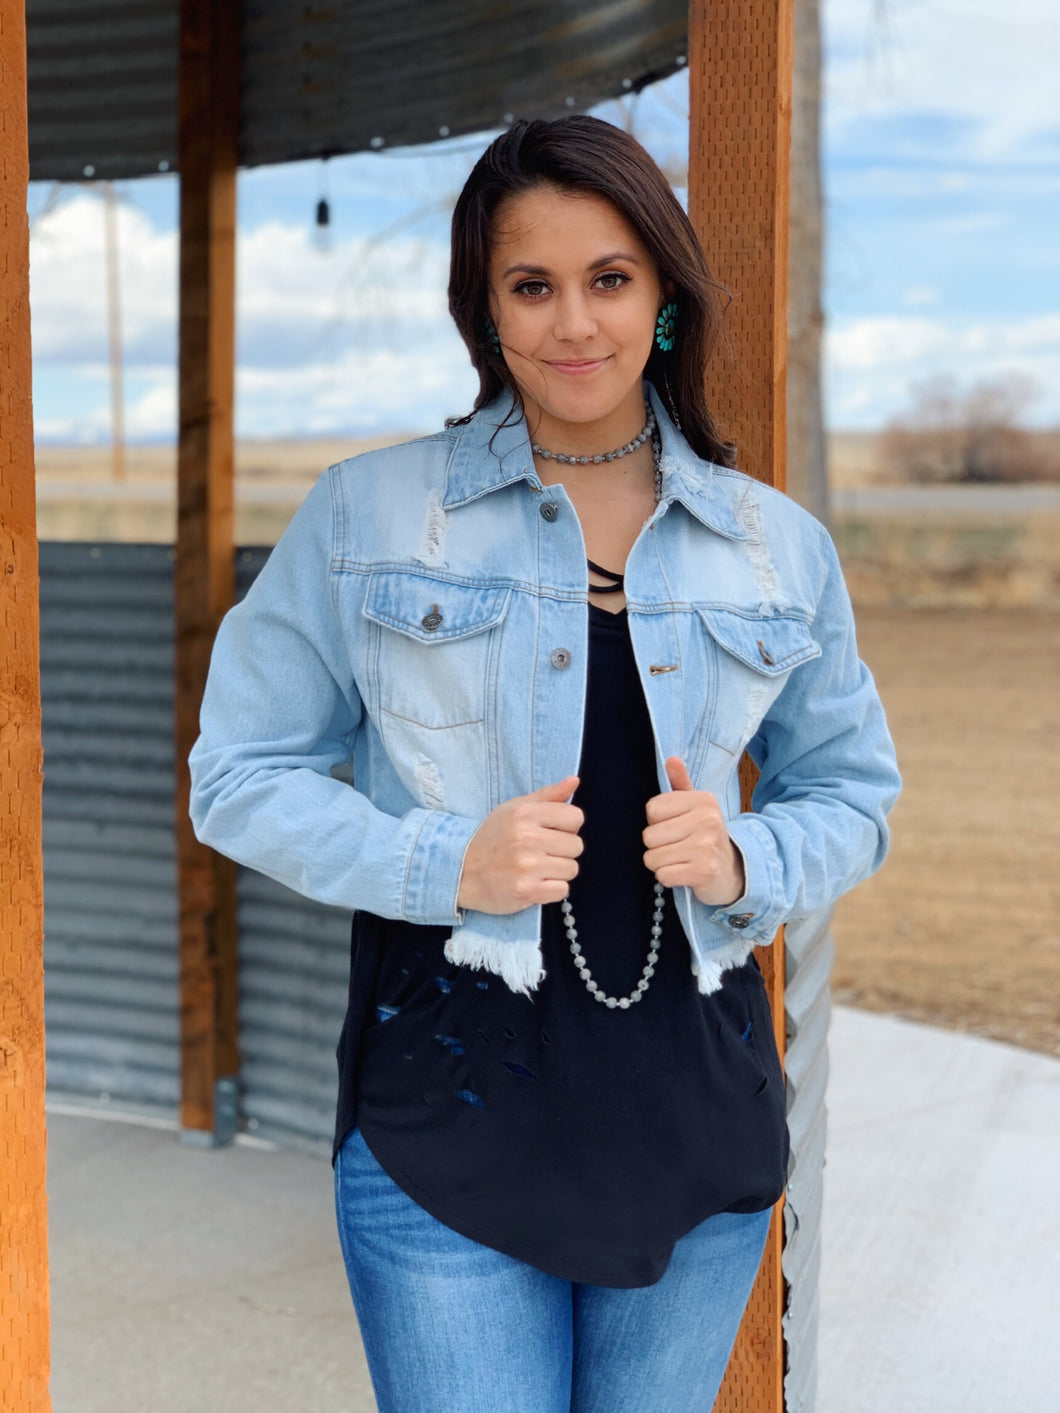 Ragged on the Edges Denim Jacket